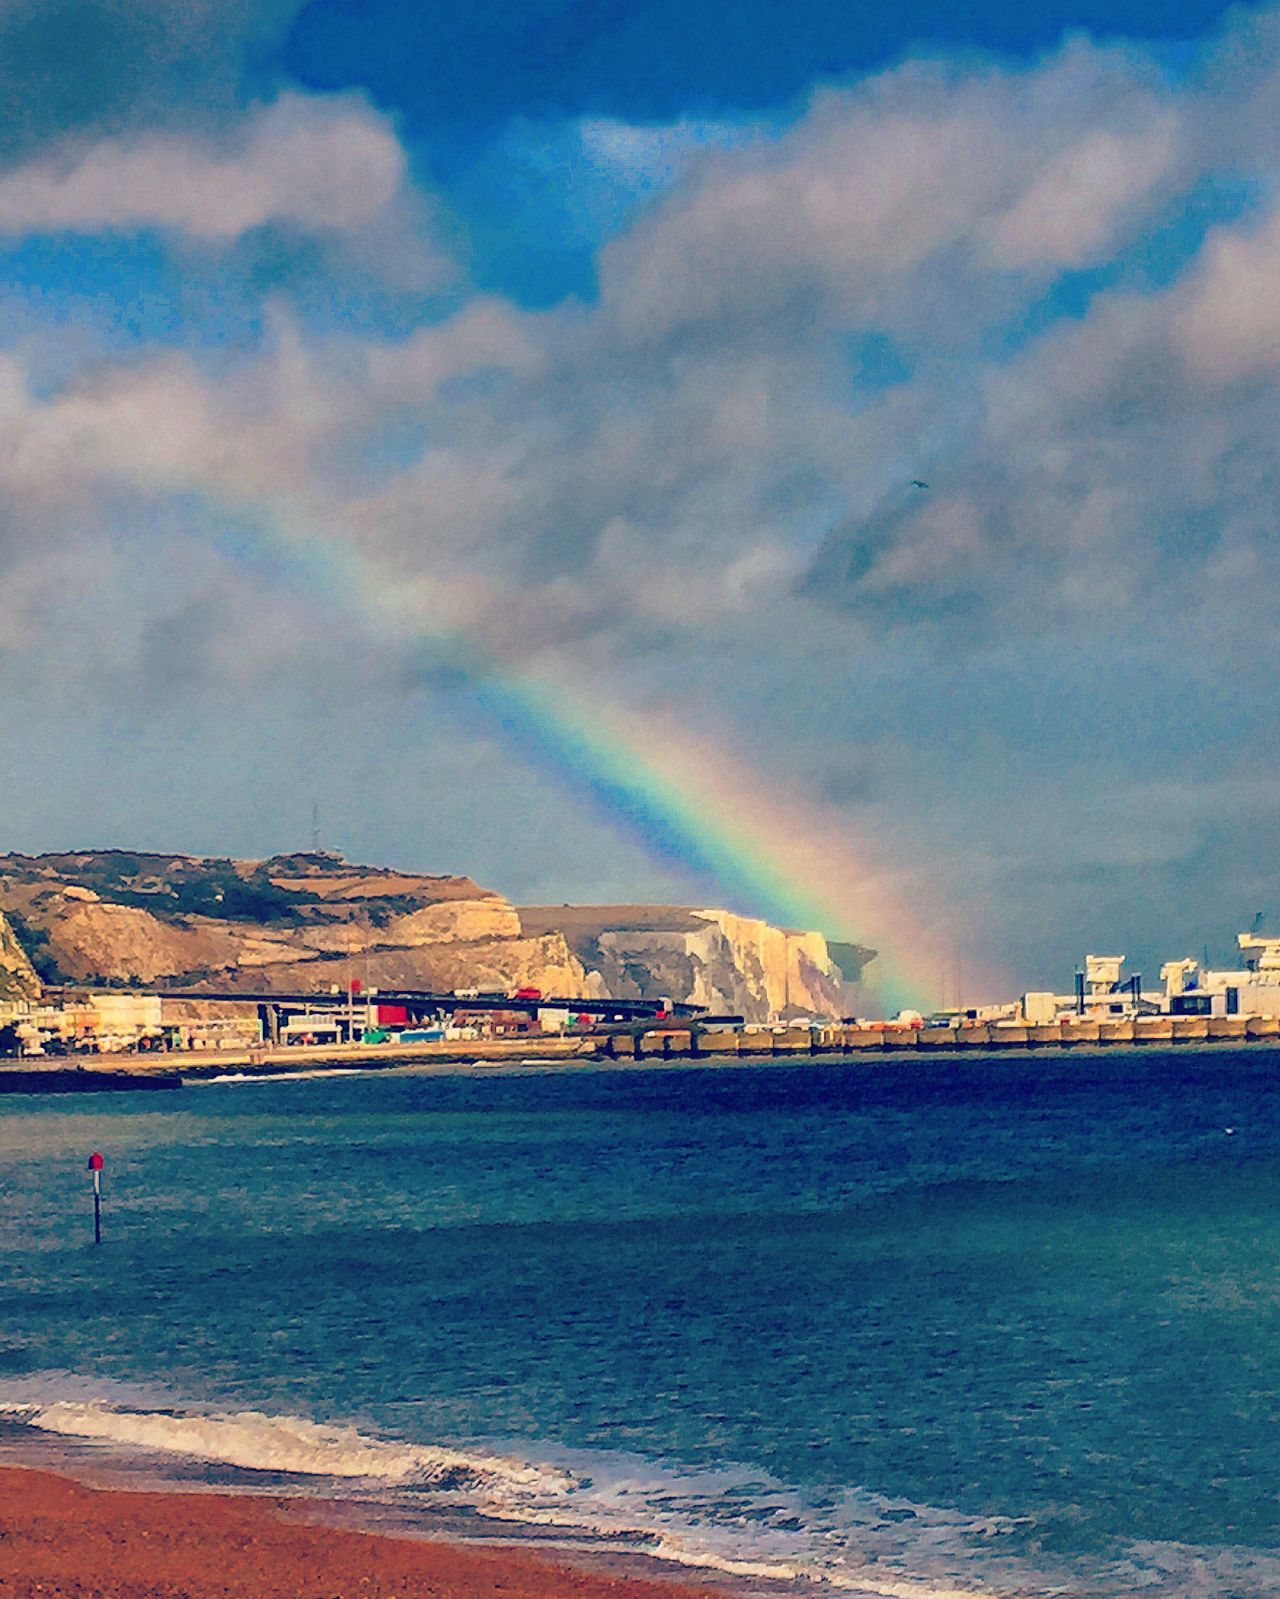 Somewhere over the rainbow🌈 - lovely view from the restaurant., Seafood Fish Eating Rainbow Rainy Days View Beautiful Beachphotography Cliffs Dover Ocean Ocean View Oceanside Ocean Waves Colours Colourful Somewhere Over The Rainbow View From The Window... Oceanview Oceanviews Kent Port Sea Sea And Sky Seascape